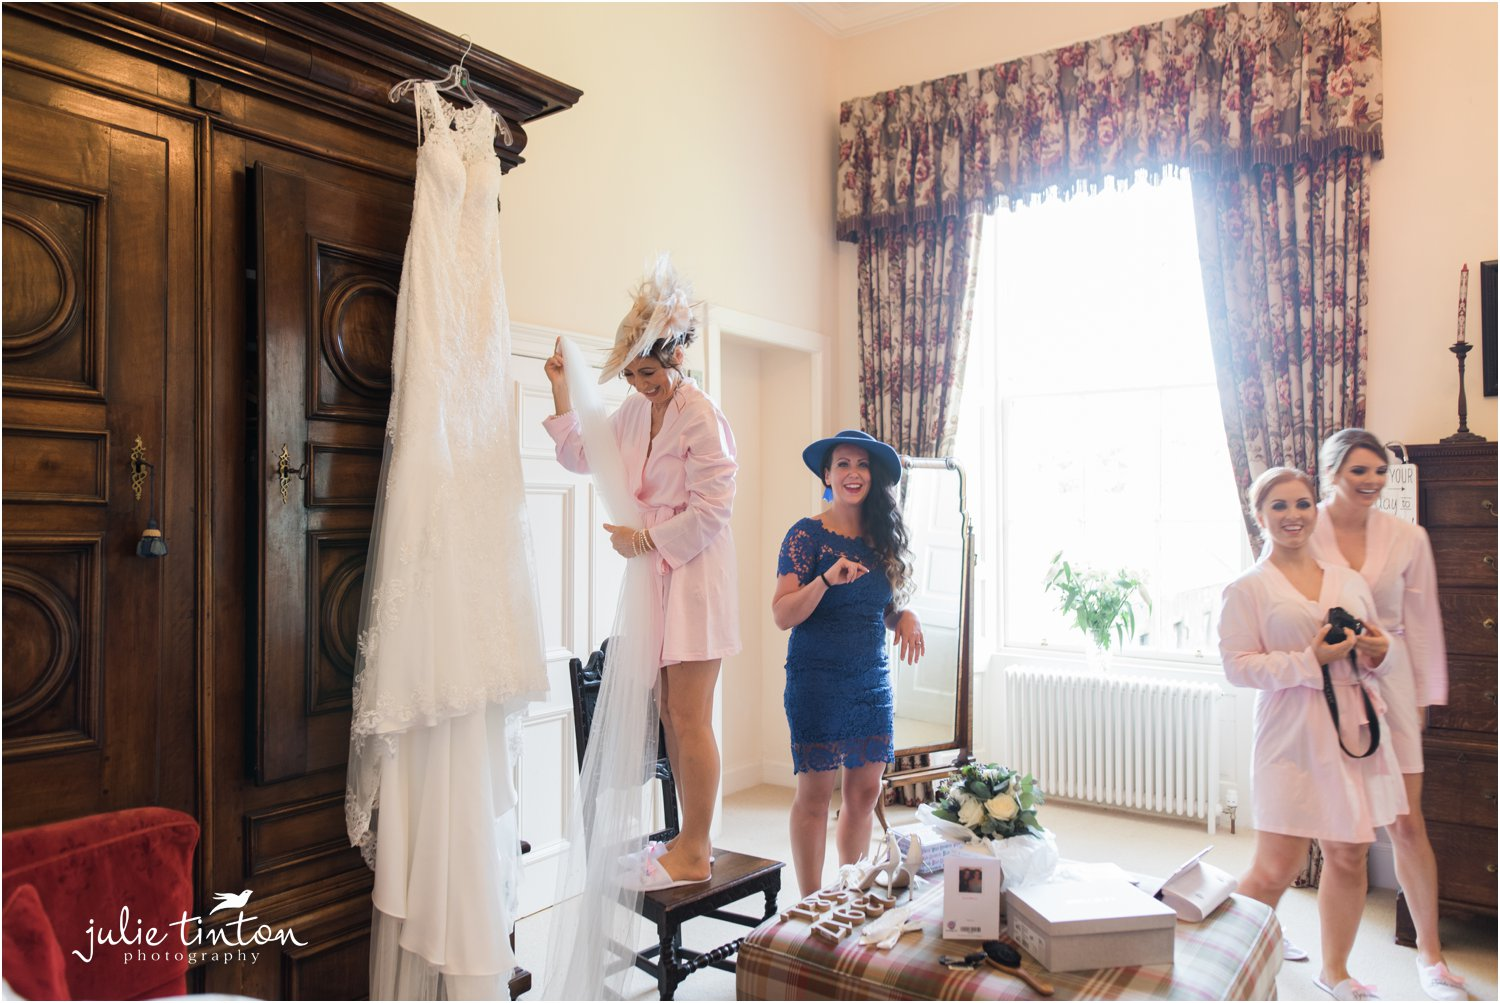 Fixing wedding dress at Broxmouth Park